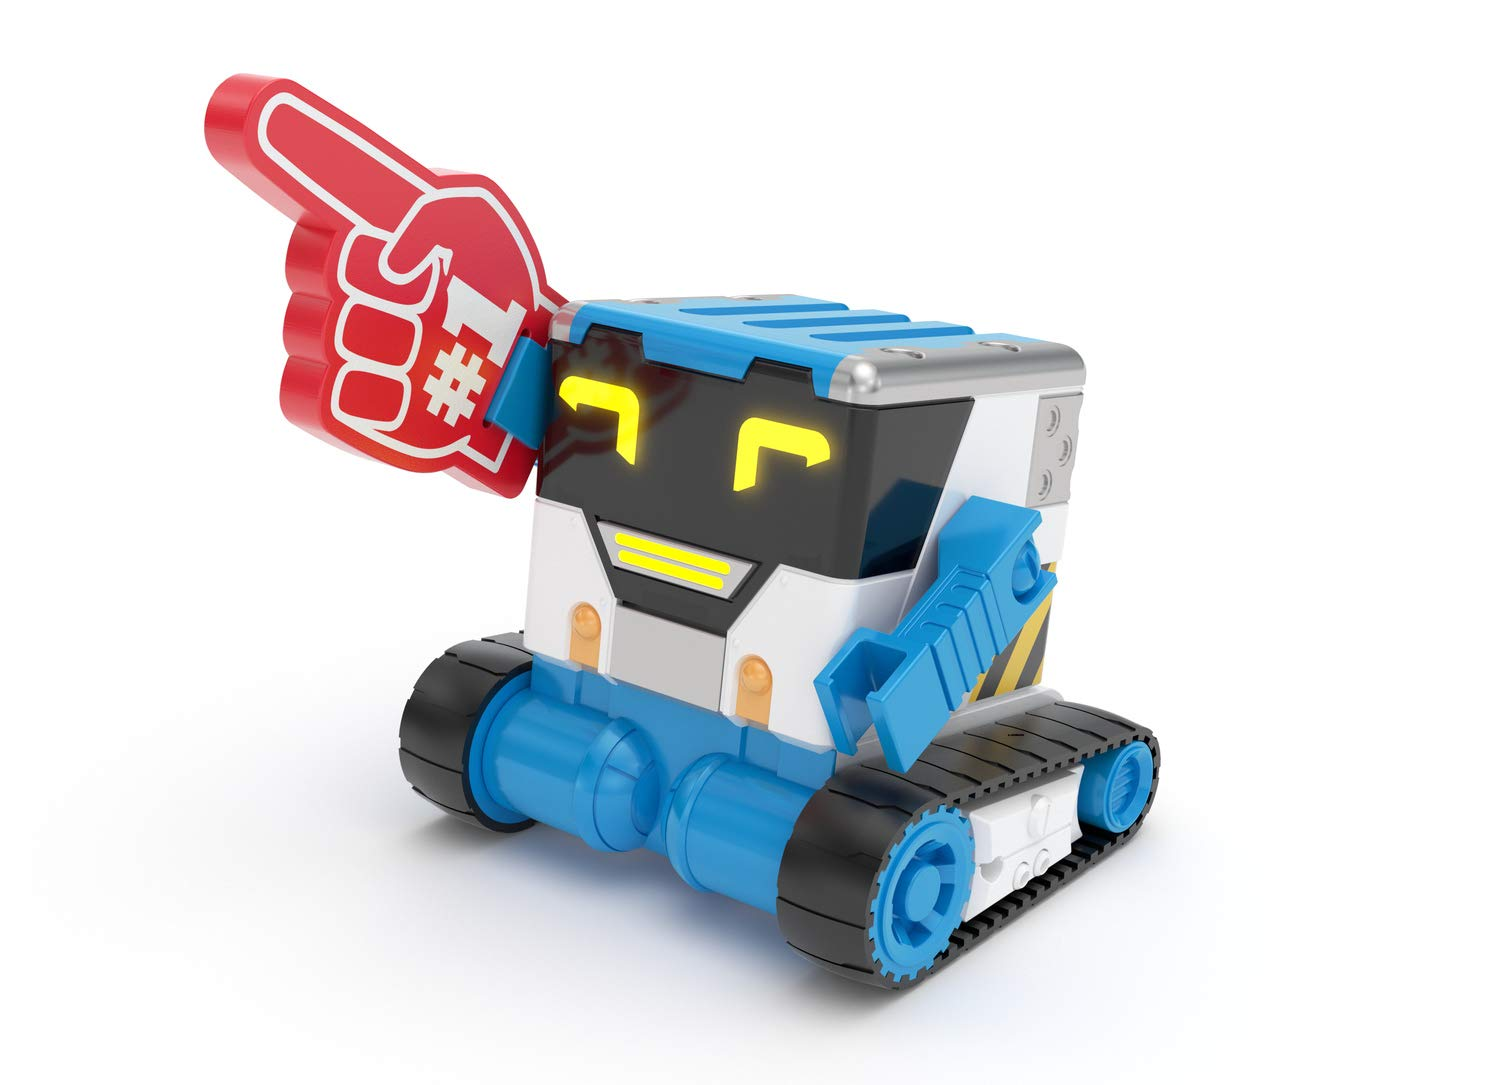 Mibro - Really Rad Robots, Interactive Remote Control Robot - Plays, Talks, and Pranks by Really R.A.D. Robots